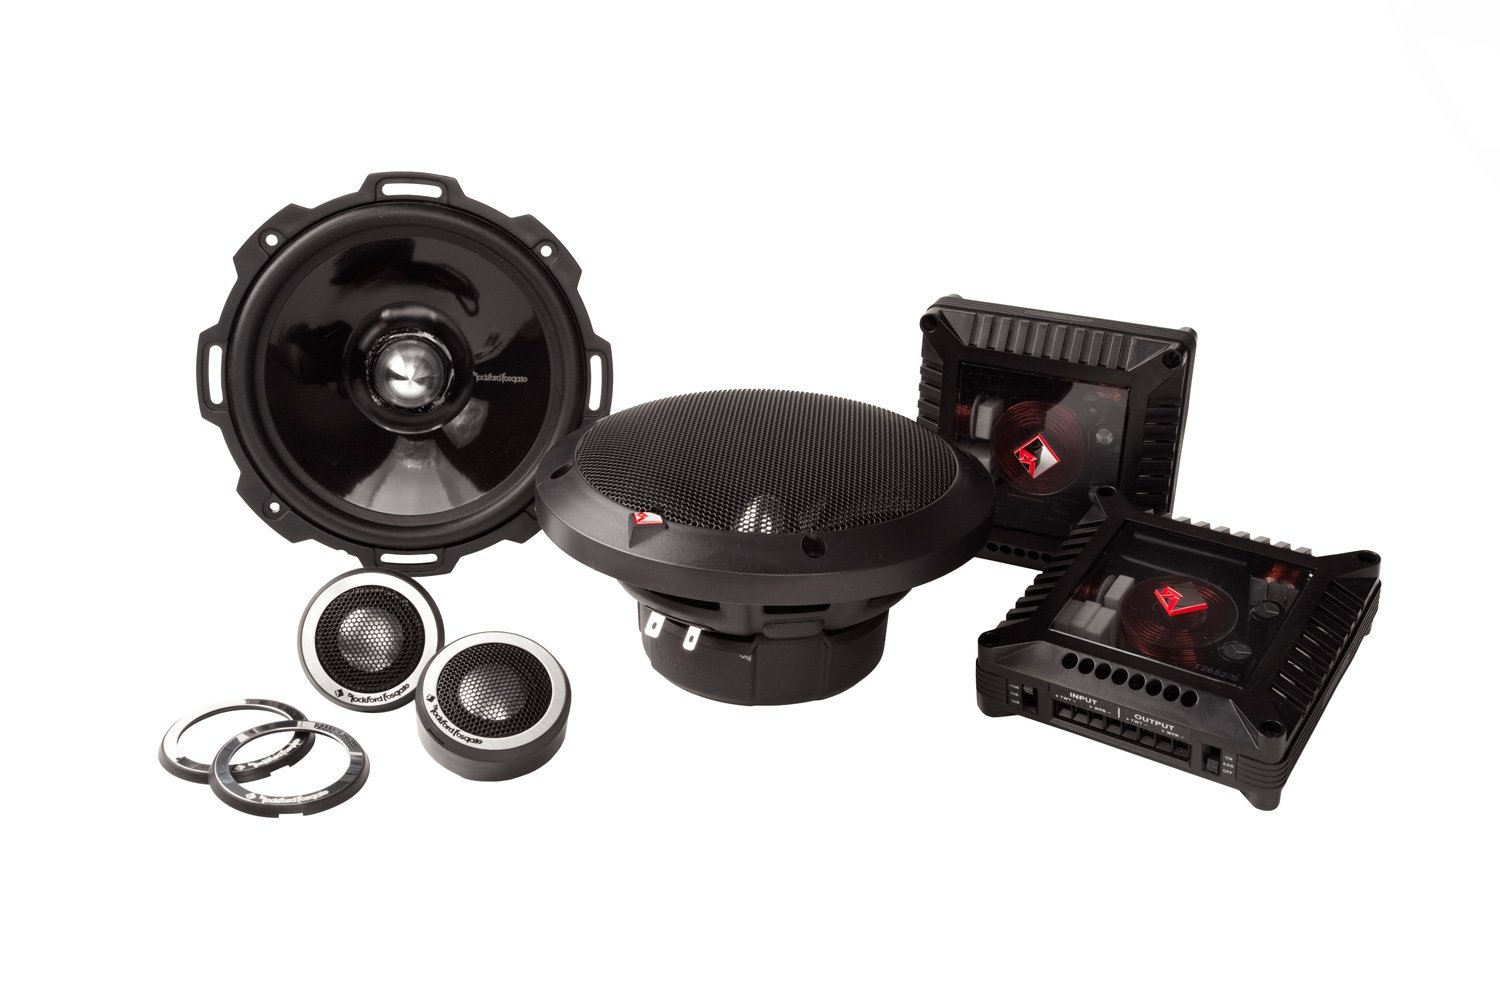 rockford fosgate t2652-s review